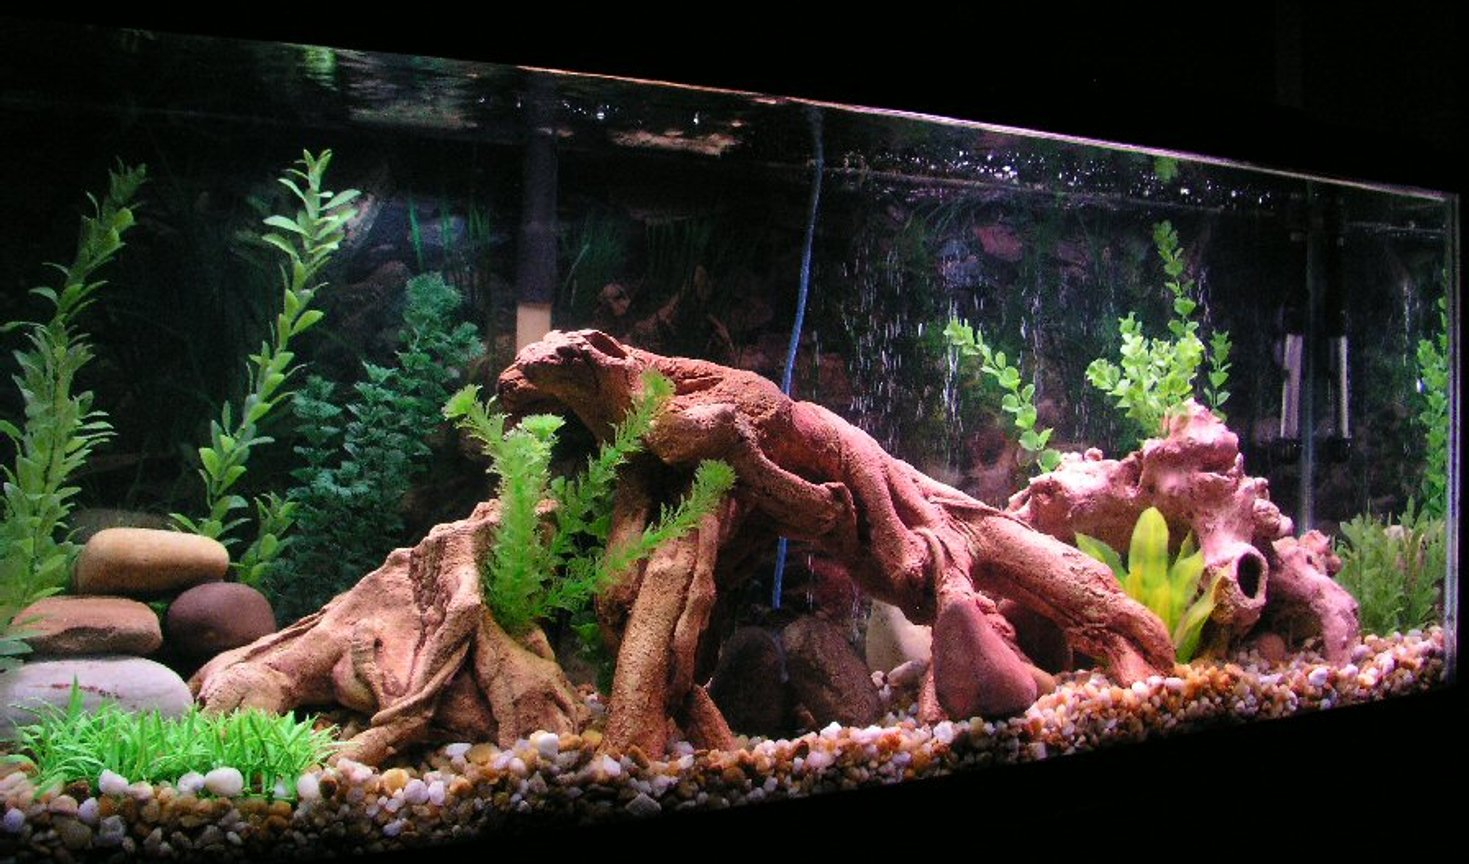 55 gallons freshwater fish tank (mostly fish and non-living decorations) - This is my recent tank for a tropical community built around gouramis.